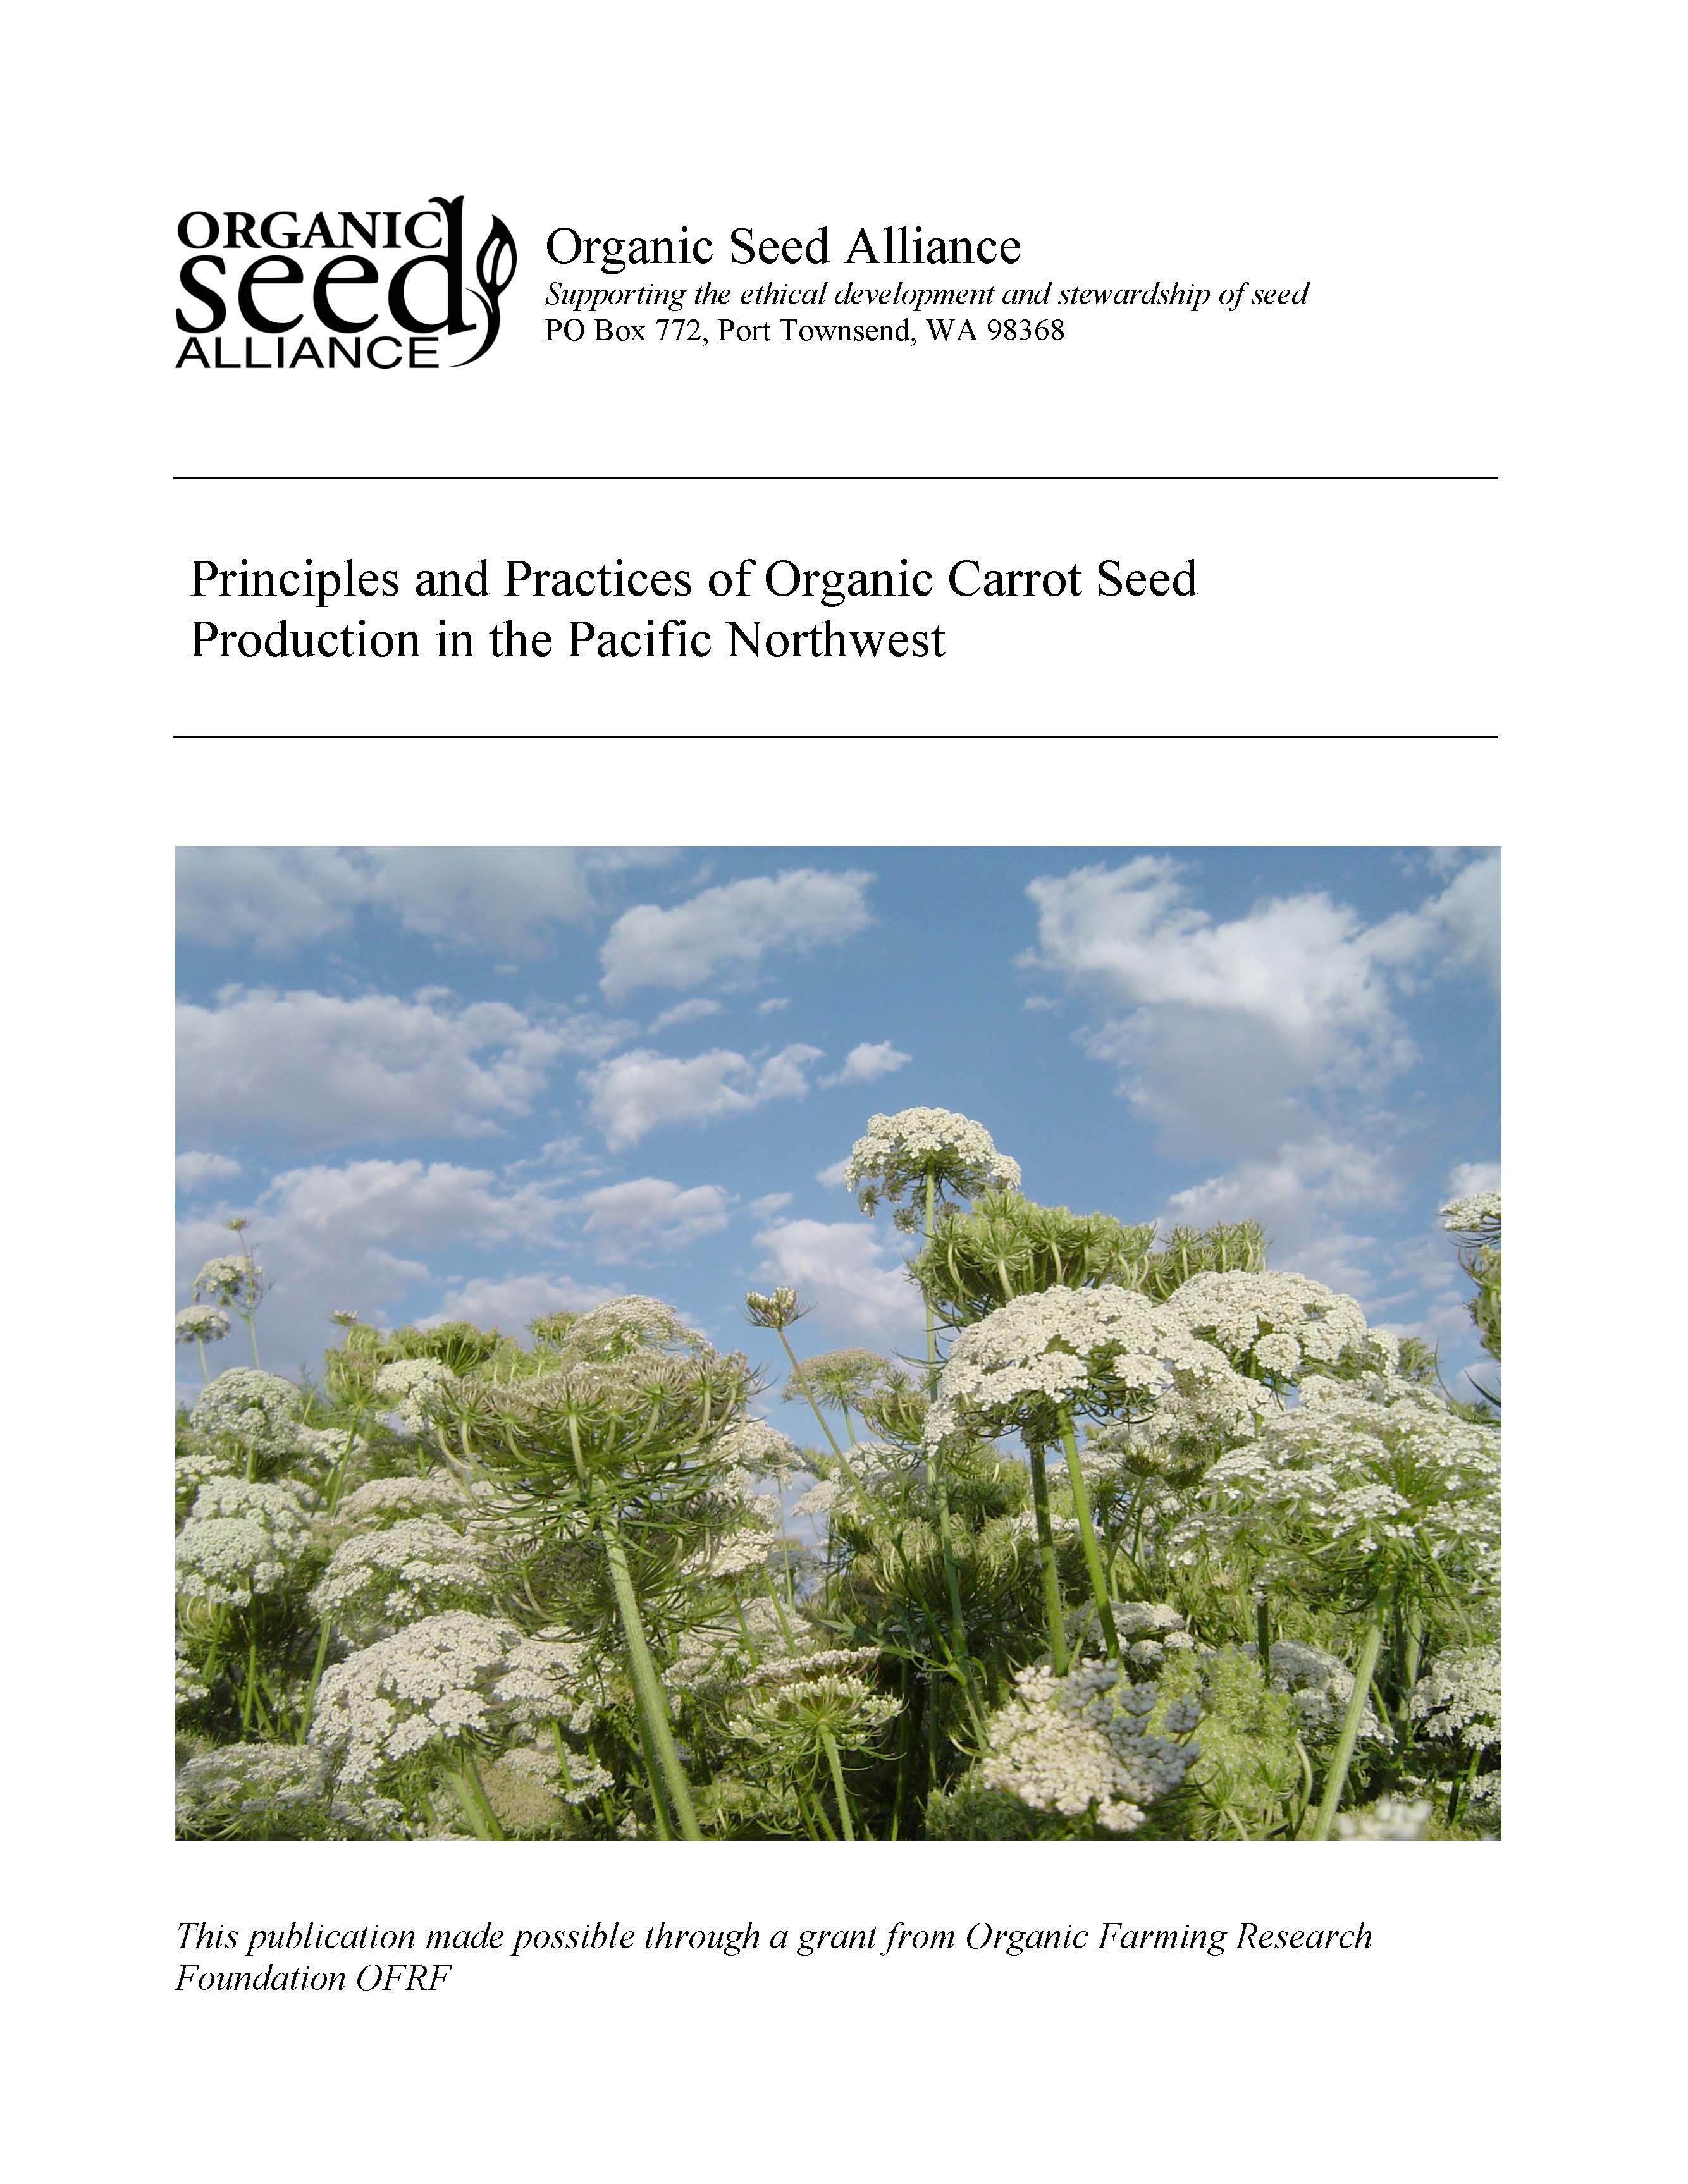 Principles And Practices Of Organic Carrot Seed Production